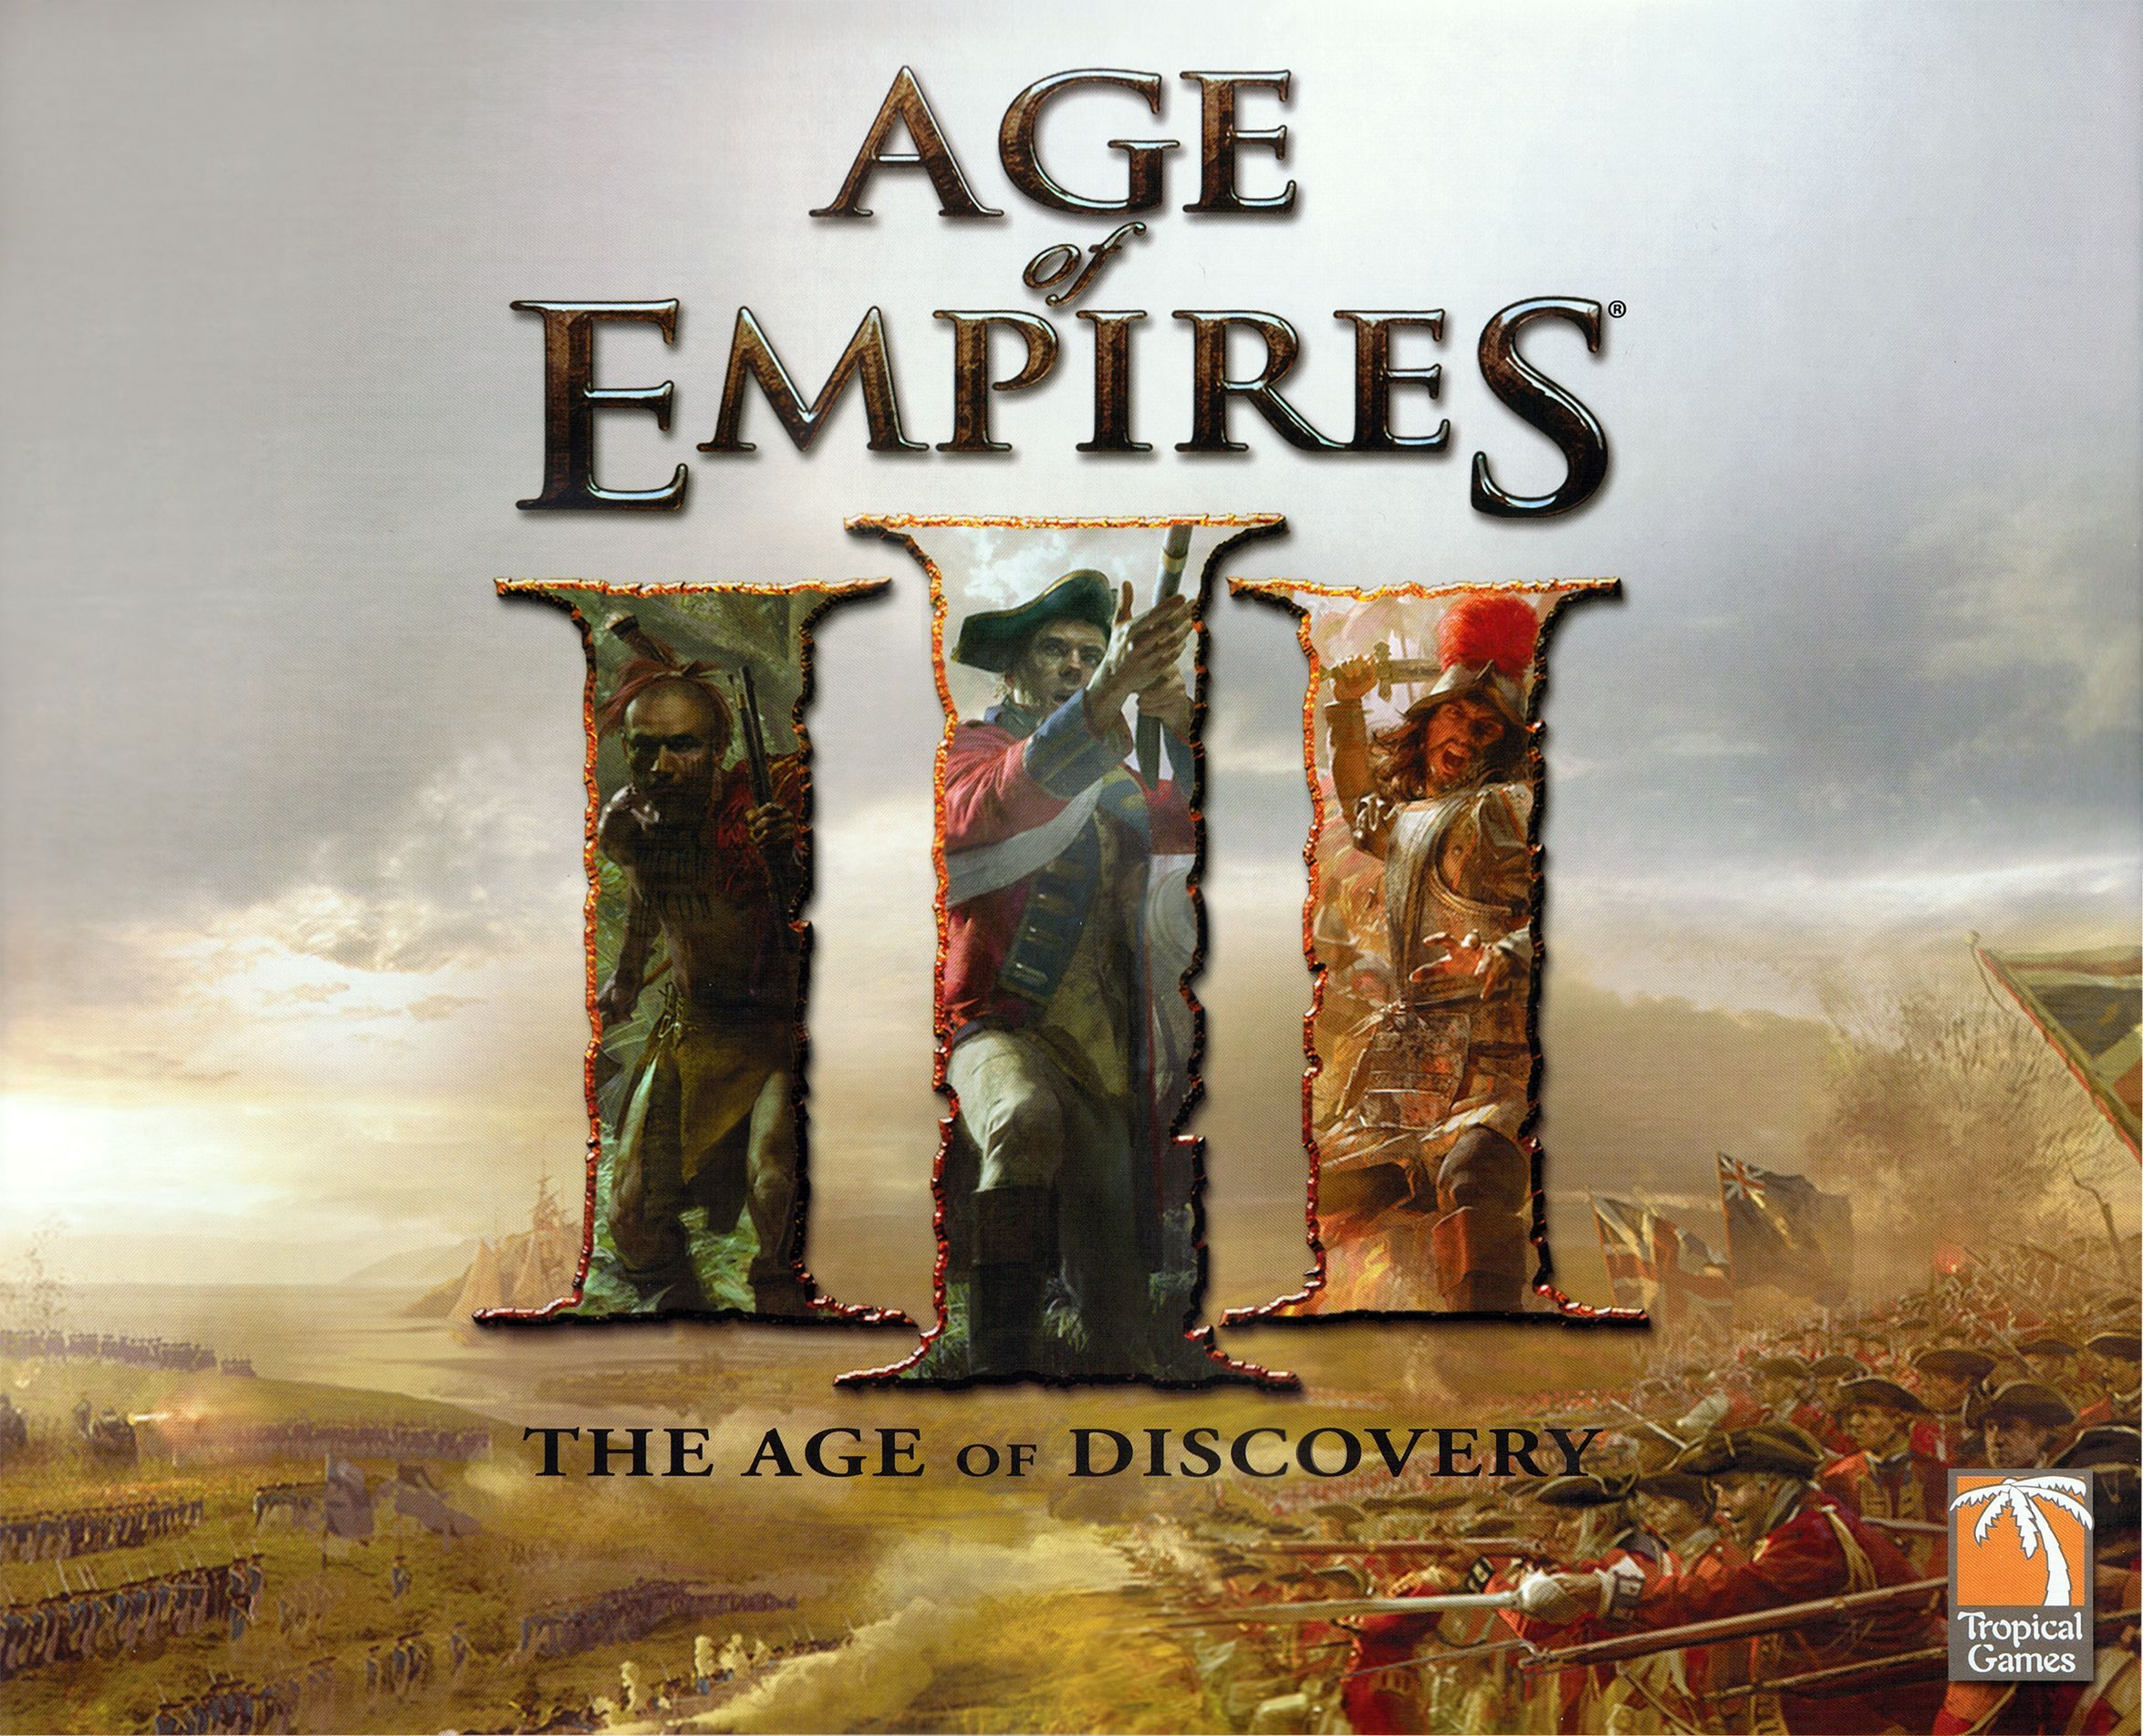 Main image for Age of Empires III: The Age of Discovery board game